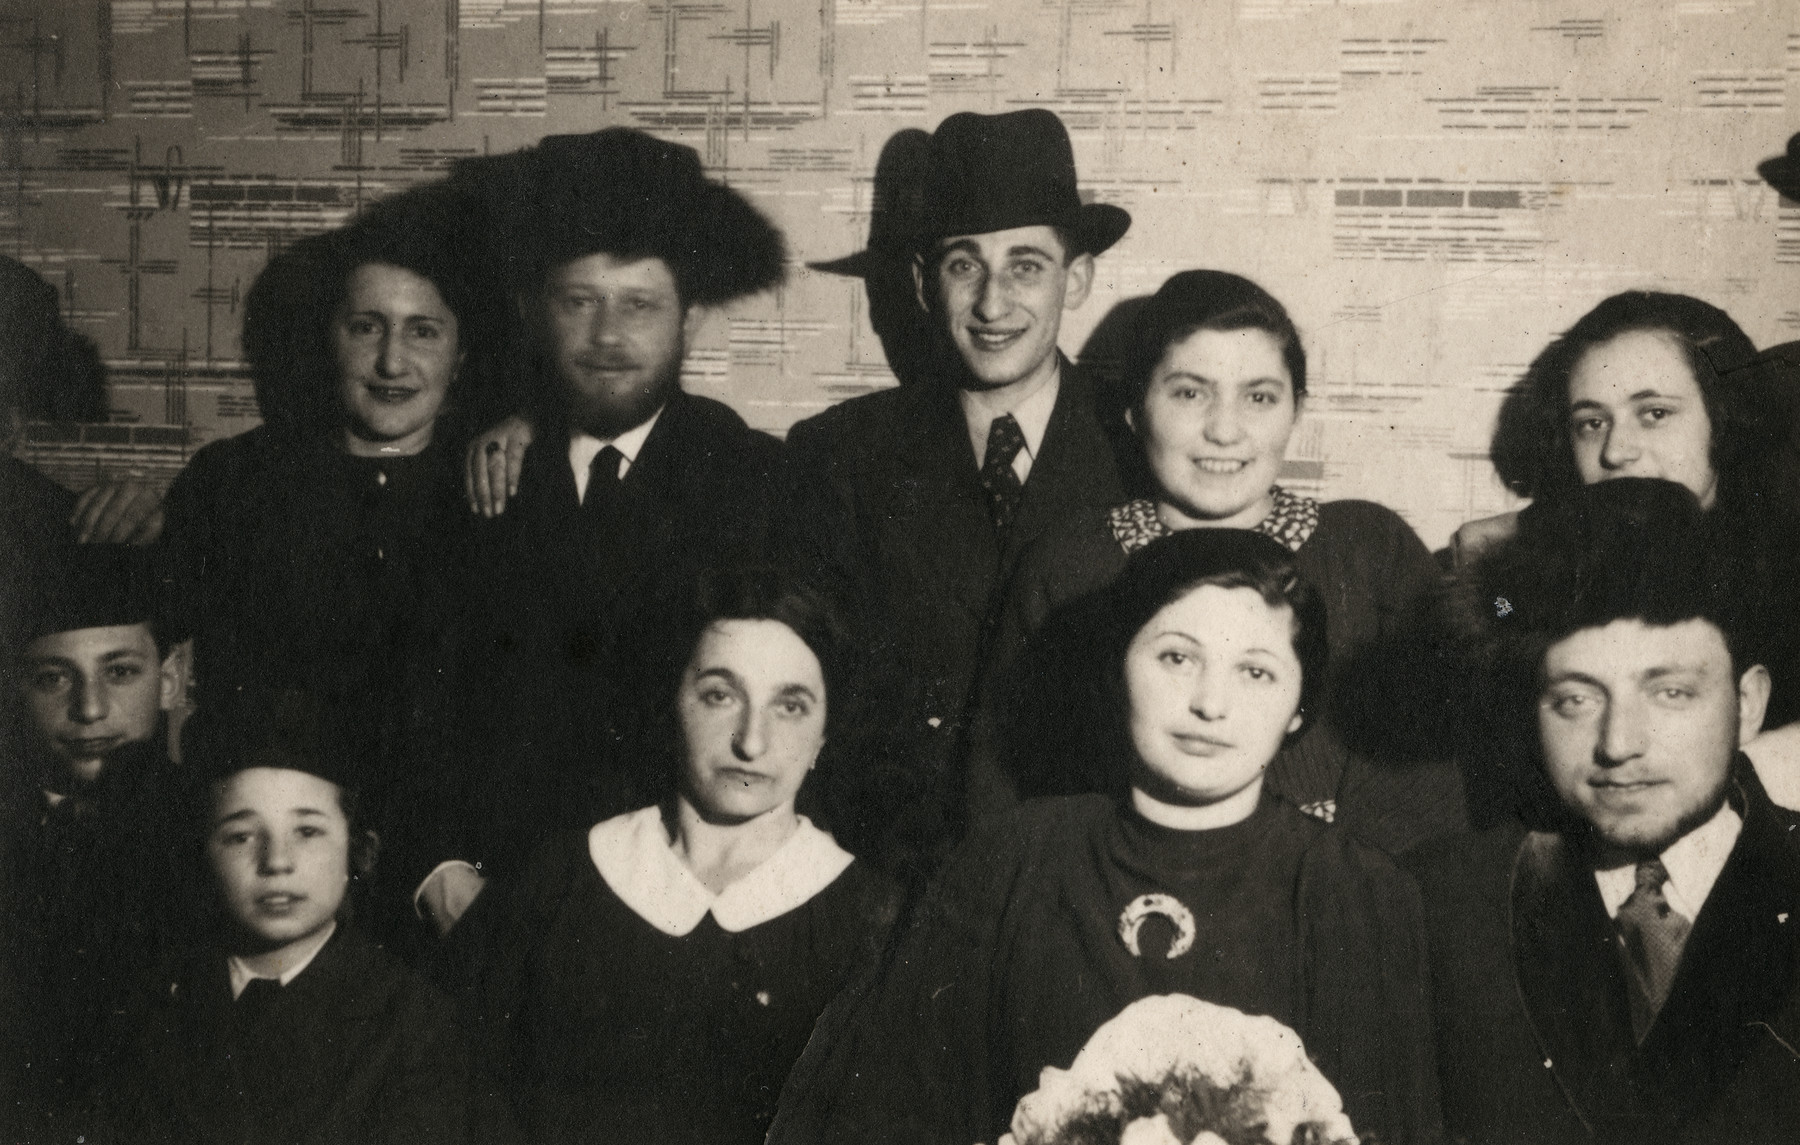 Group portrait of the extended Rotenberg-Widowsky family, Bobover Hasidim  Pictured are Haim Widowsky (originally Rotenberg) at the bottom with his cousins, his father Yehuda Rotenberg (wearing fur hat, second from left on top), his mother Sara nee Widowsky with white collar.